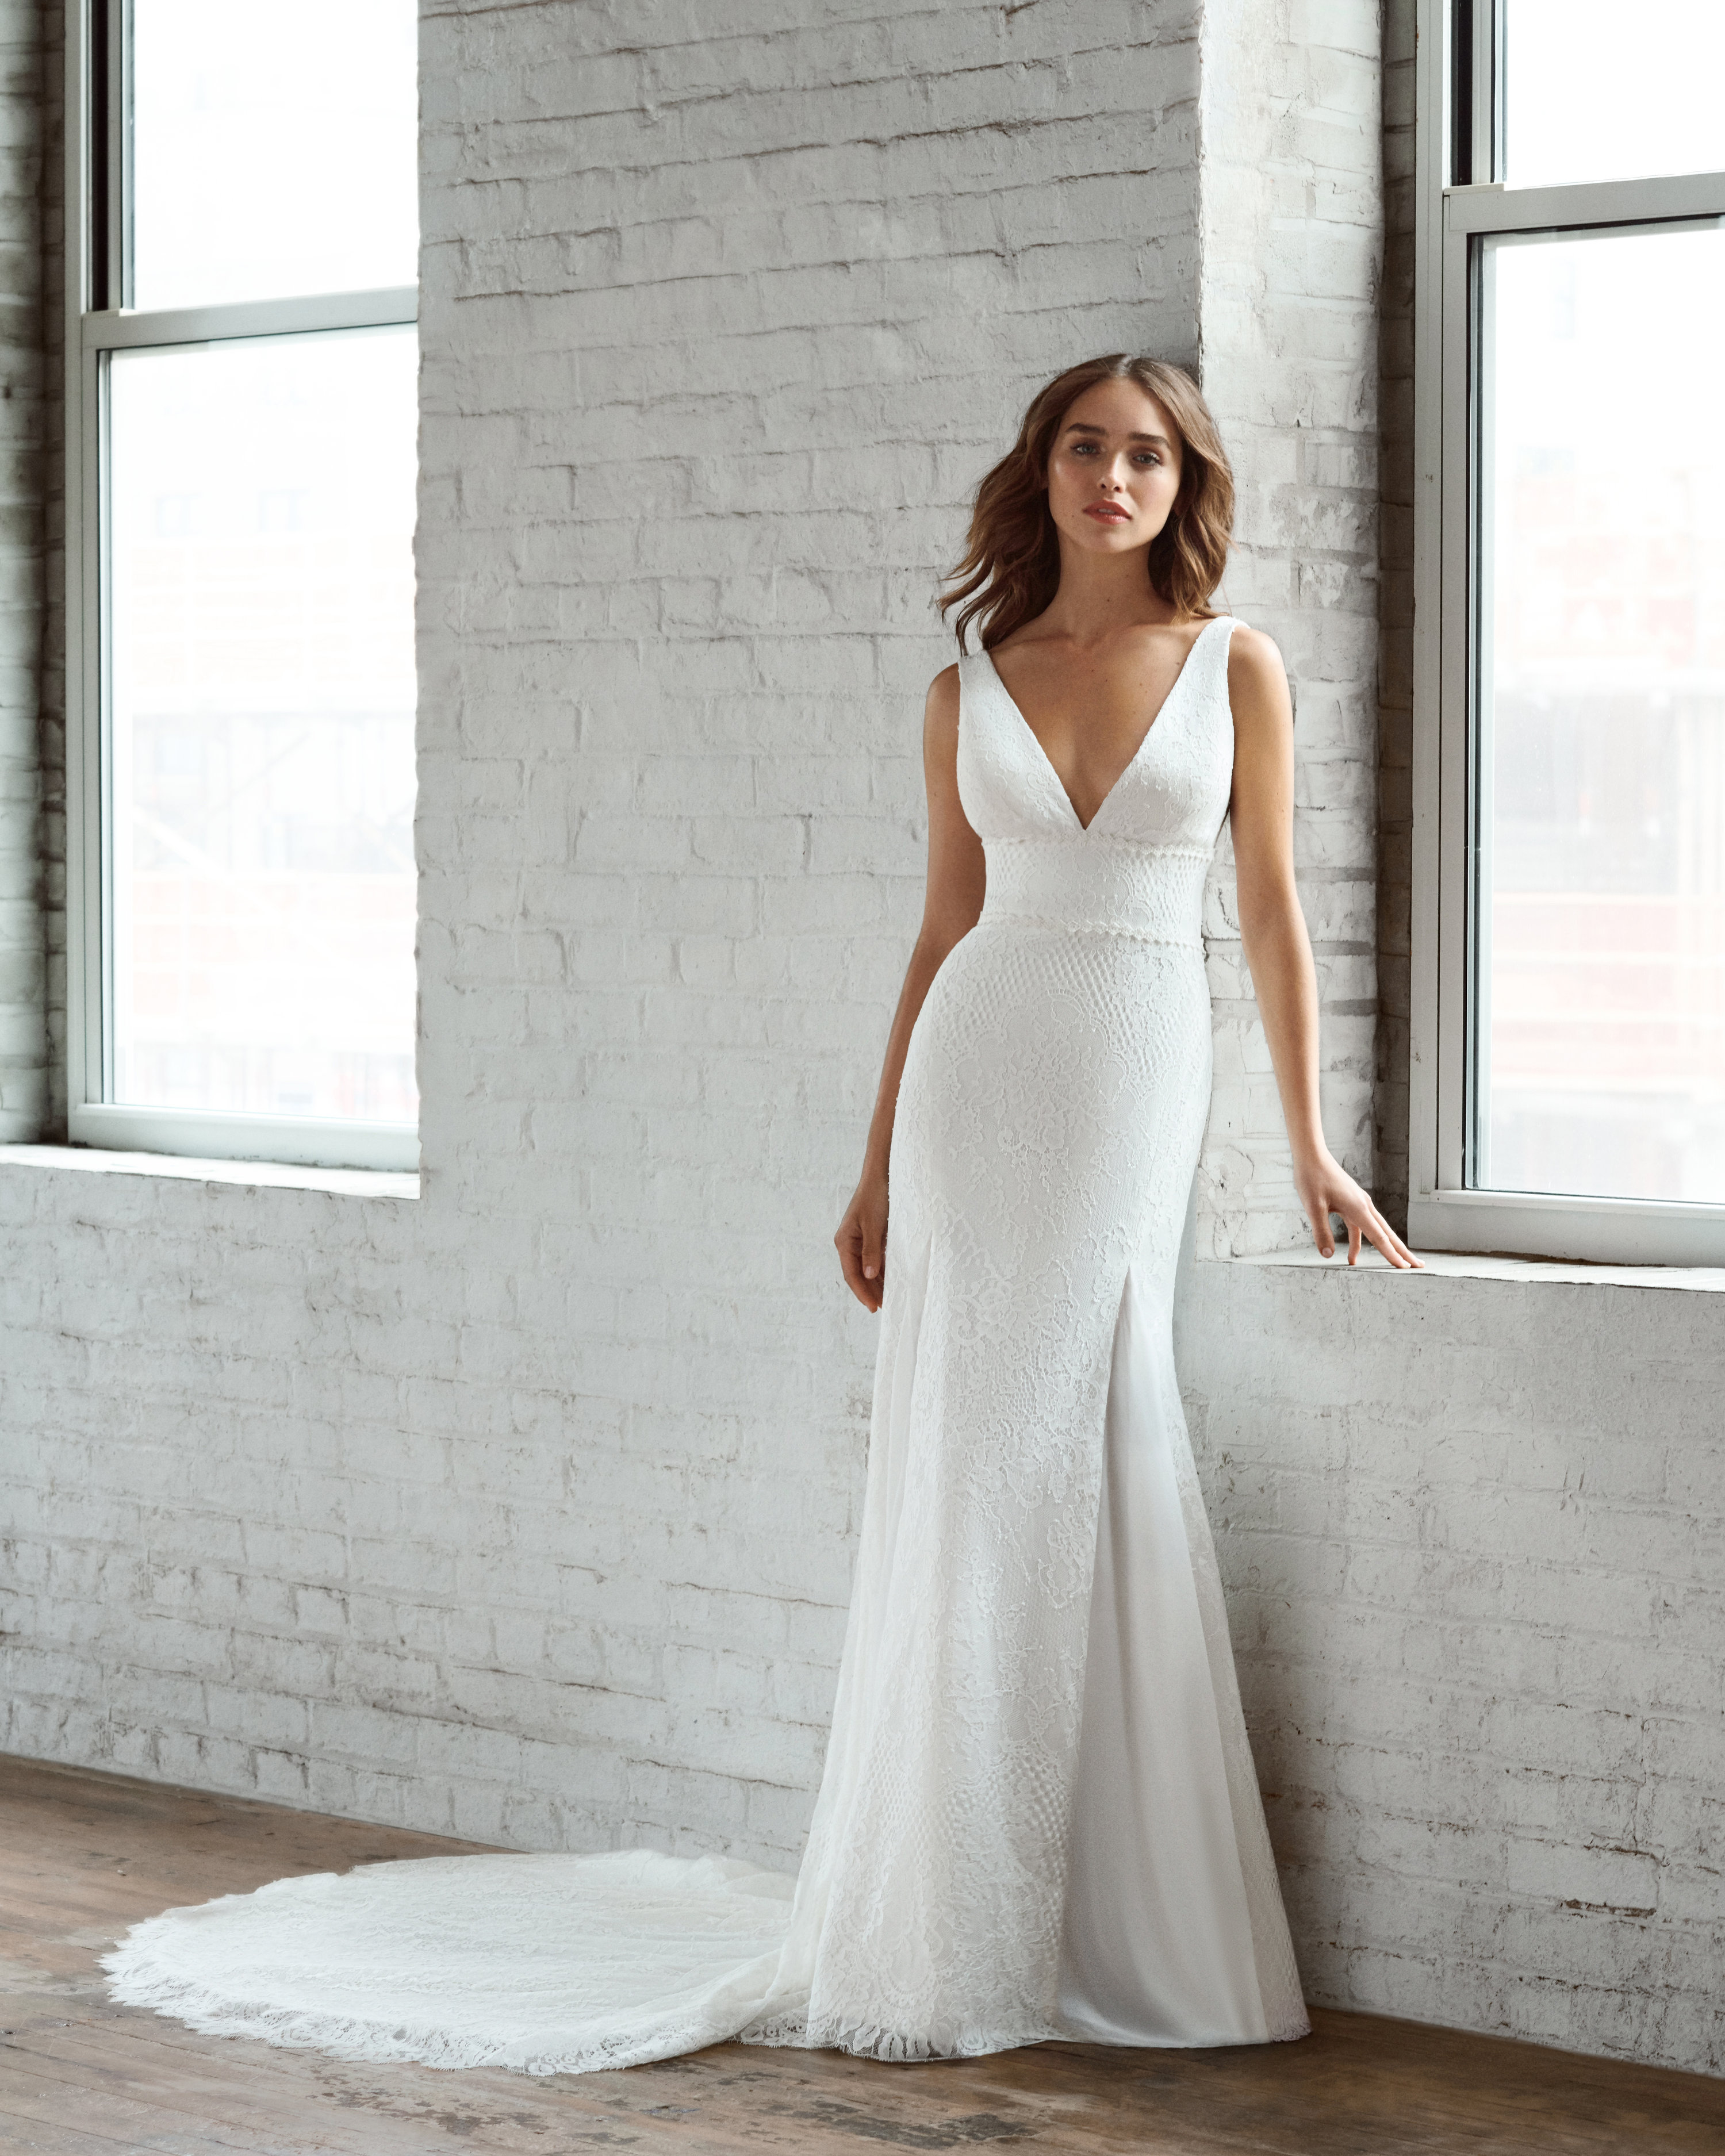 Bridal Gowns And Wedding Dresses By Jlm Couture Style 7855 Liana